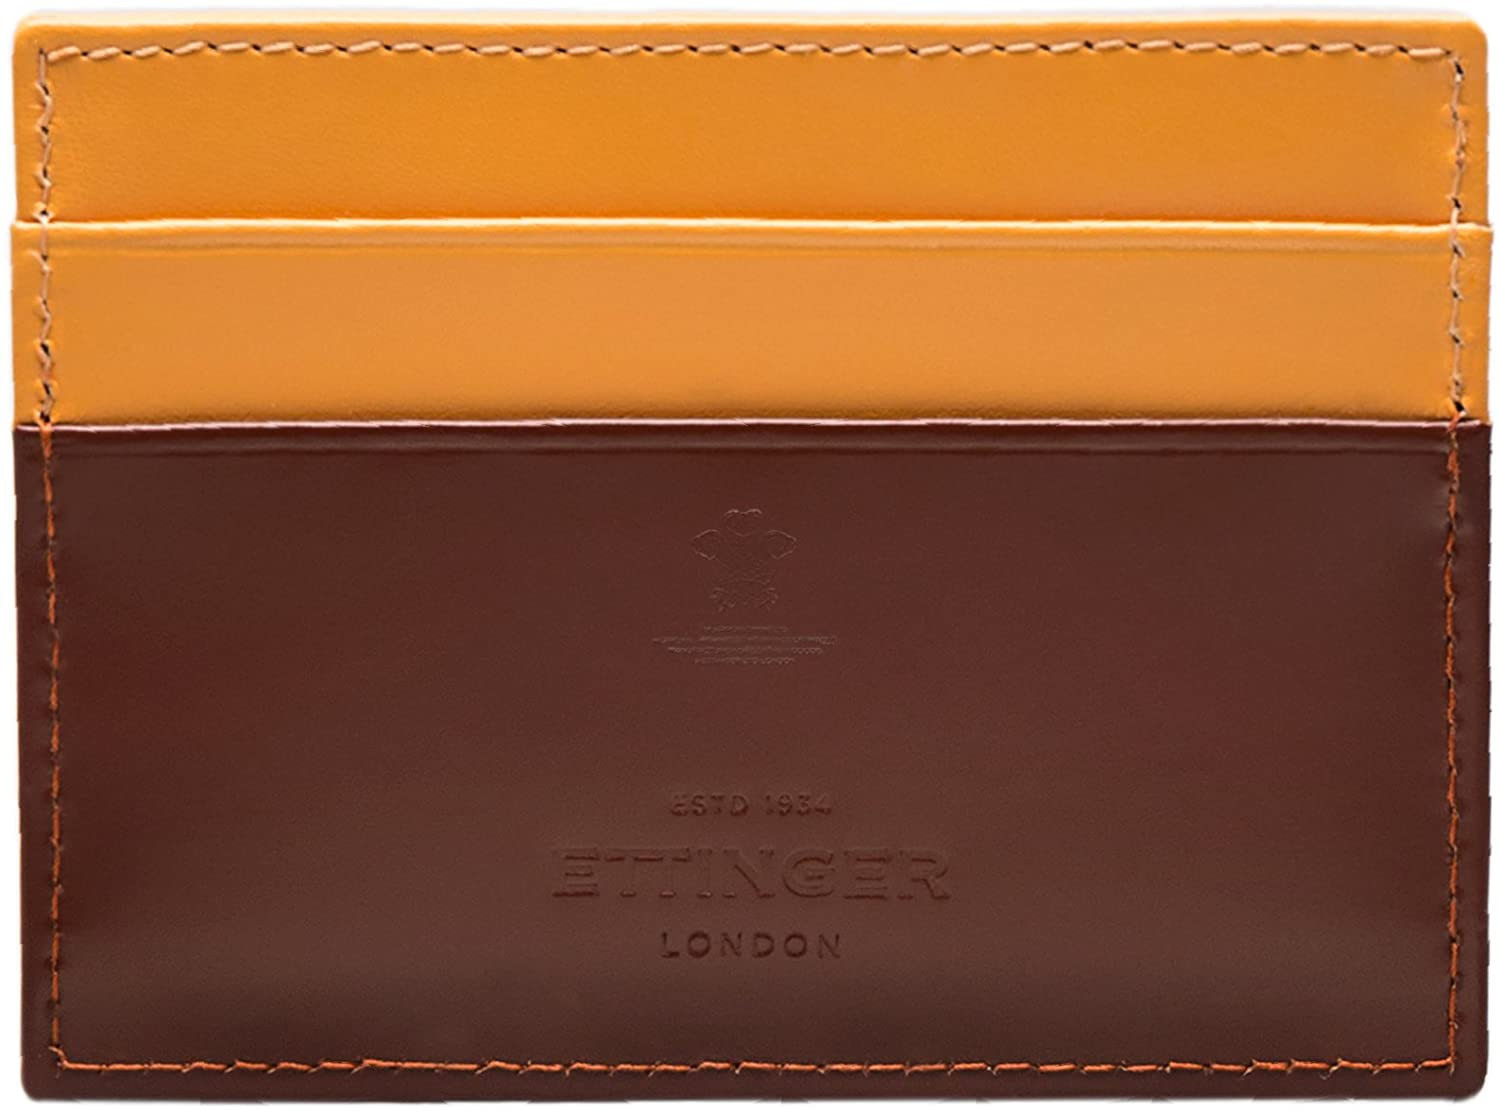 Ettinger Bridle Hide Flat Credit Card Case